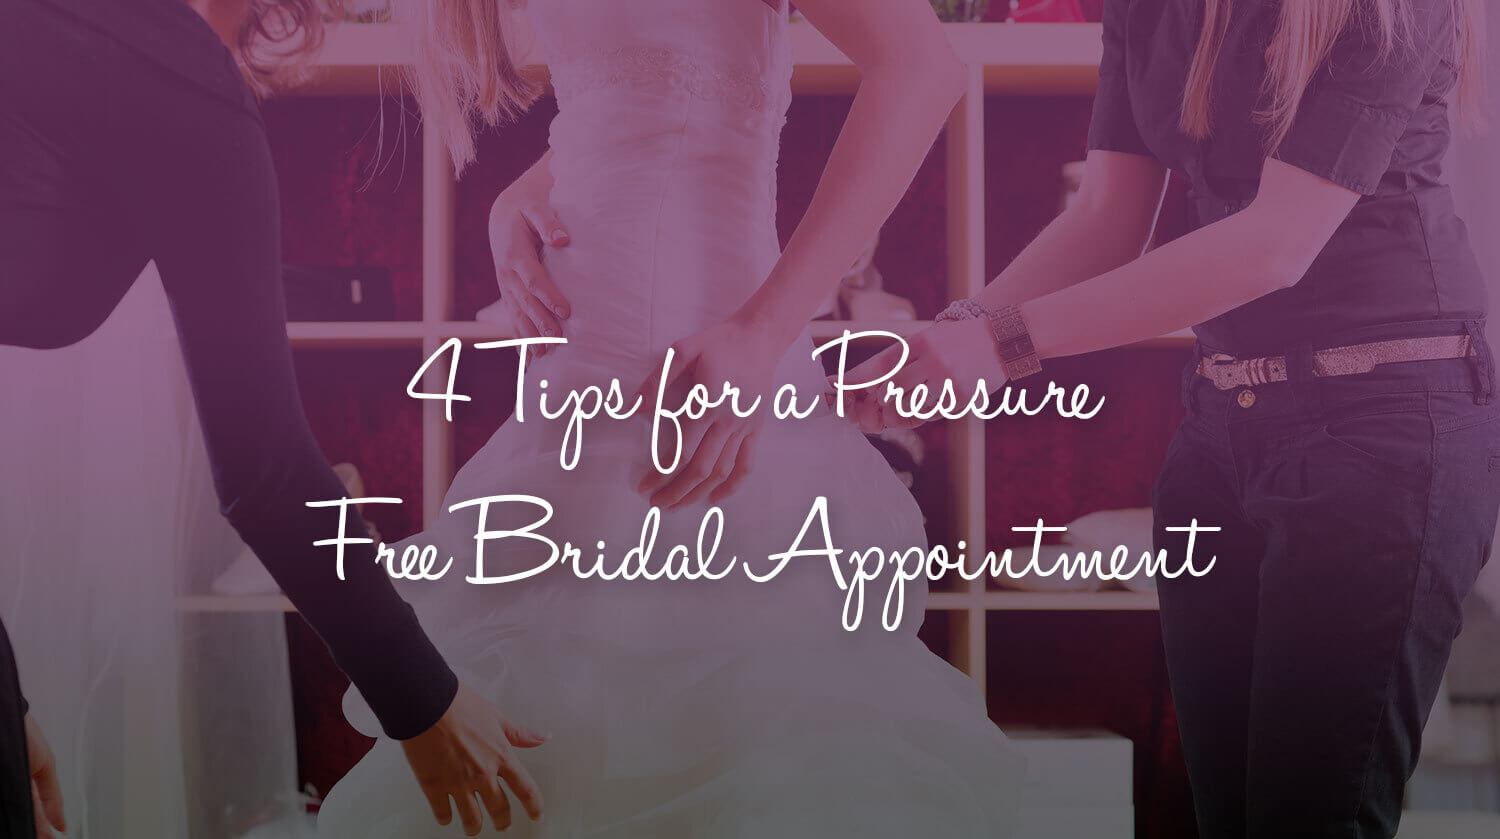 4 Tips for a Pressure Free Bridal Appointment